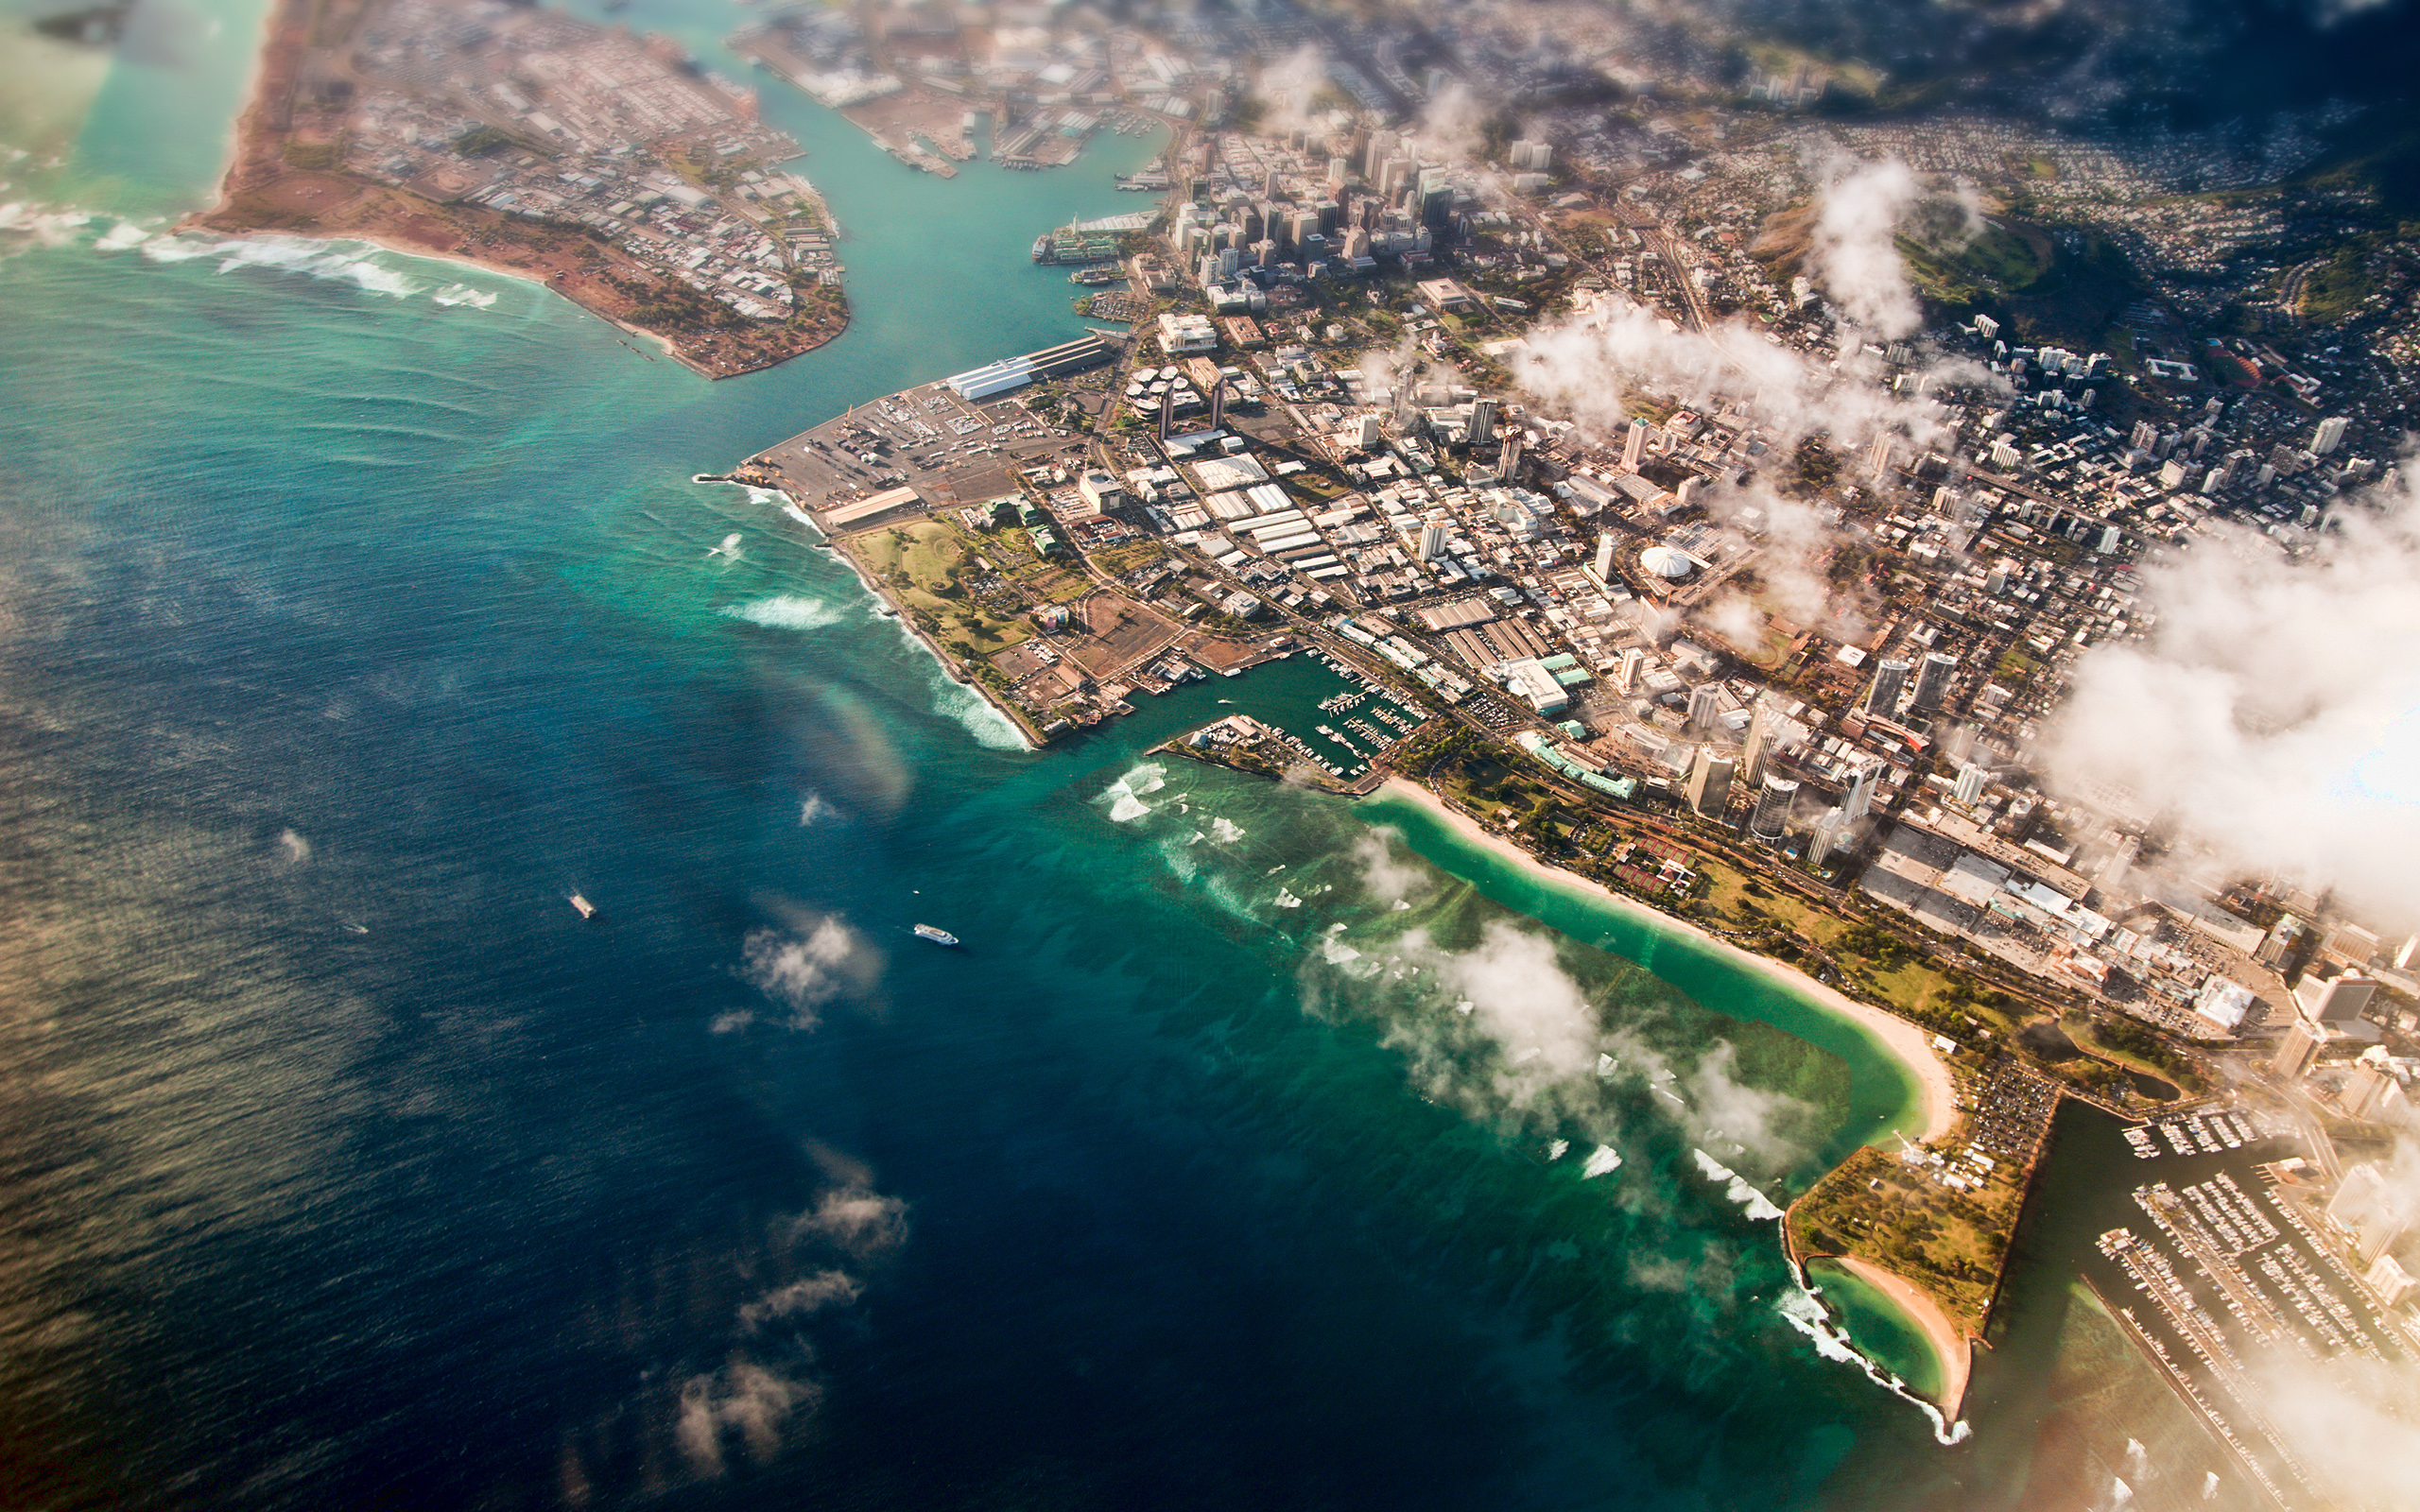 3d Tsunami Wallpapers Aerial View Of Honolulu Hawaii Wallpapers Aerial View Of